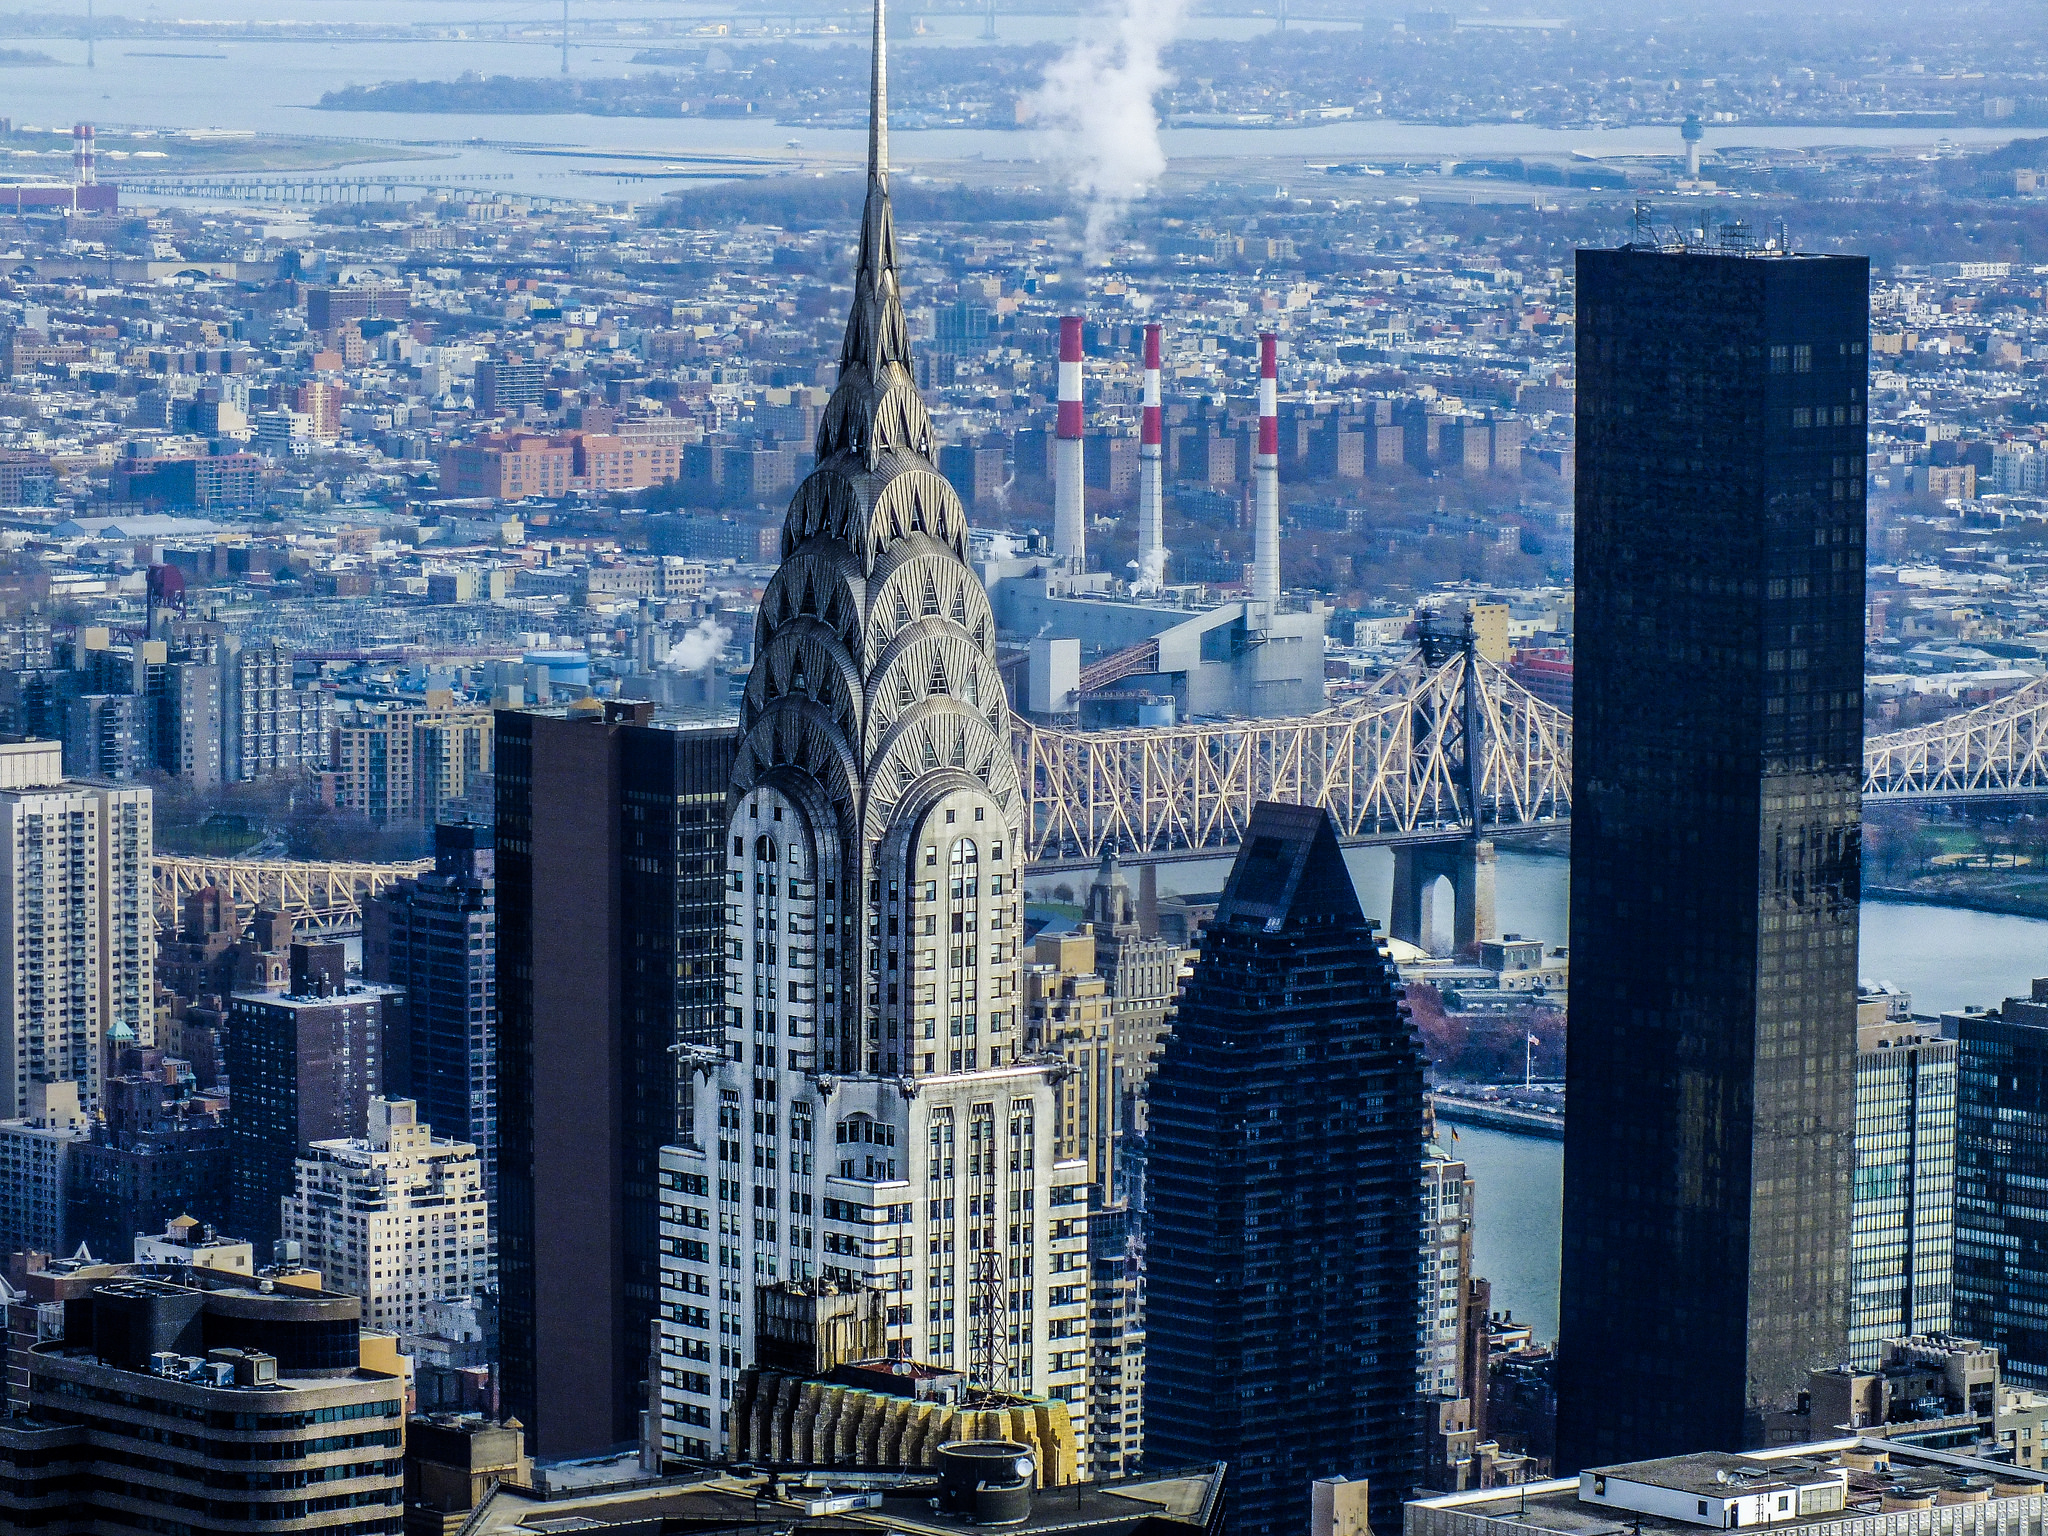 chrysler building skyscraper in new york city thousand wonders. Black Bedroom Furniture Sets. Home Design Ideas